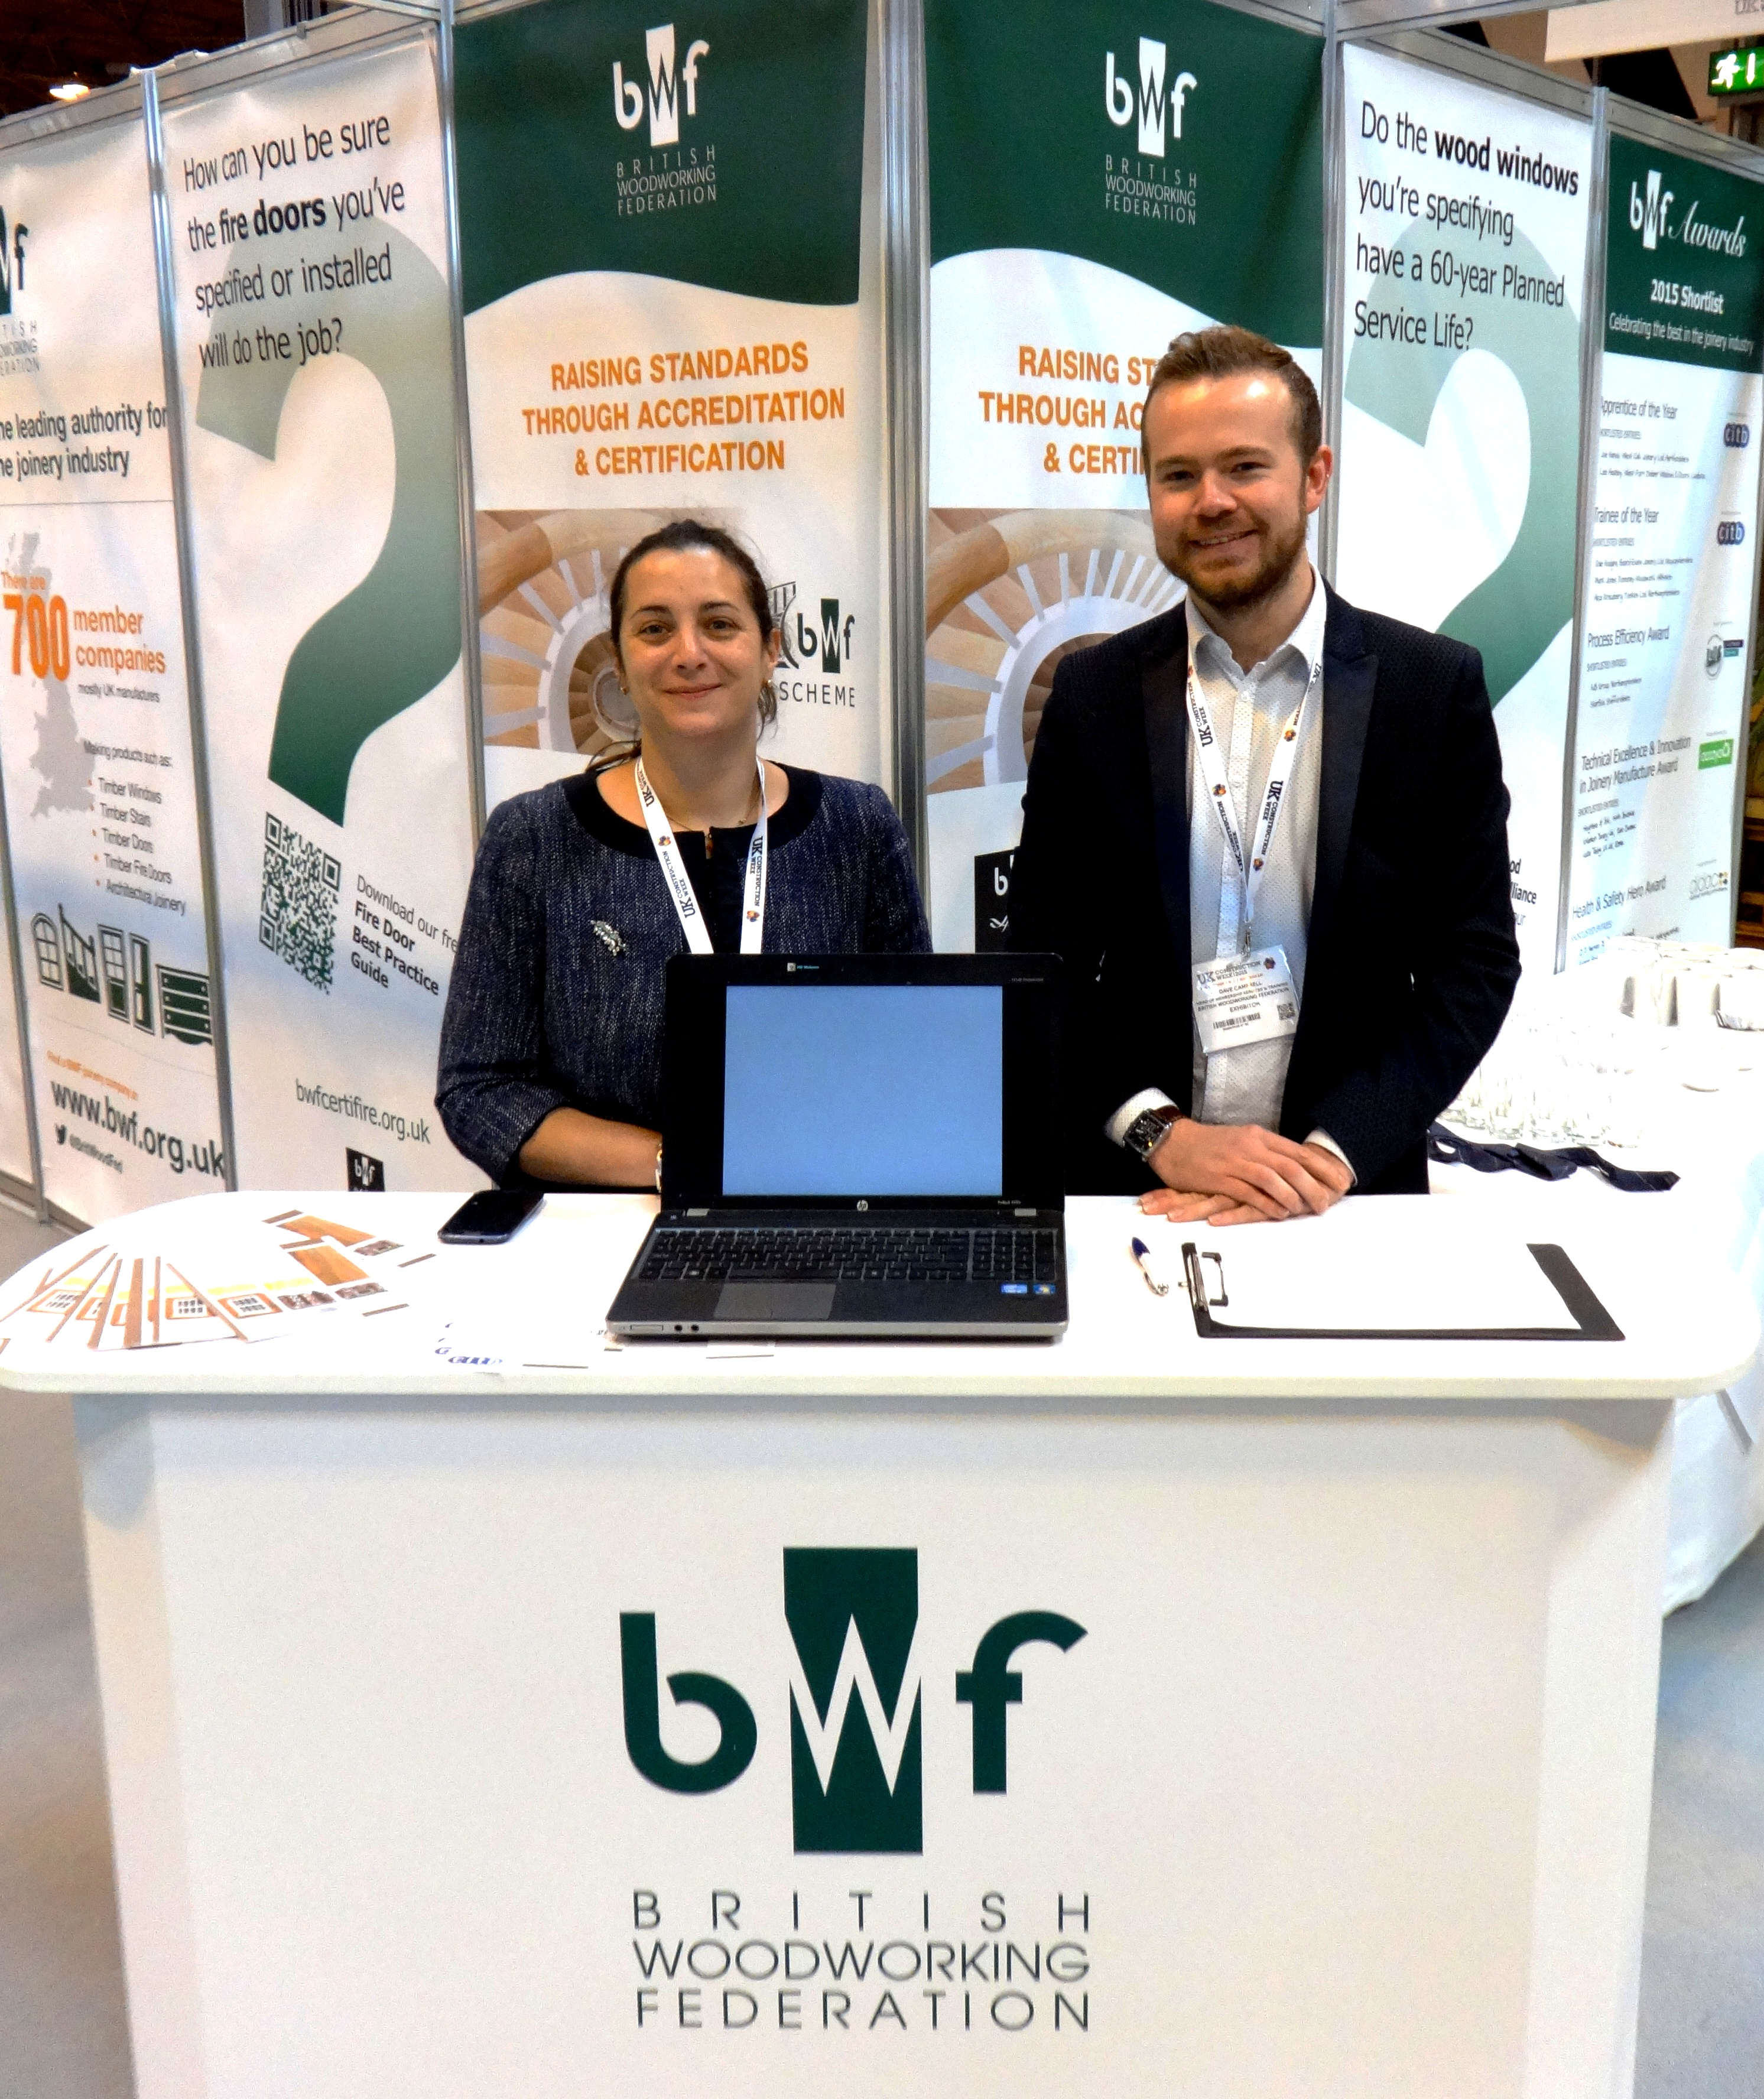 Meet the BWF team of experts at the Education Zone (R500) at W Exhibition